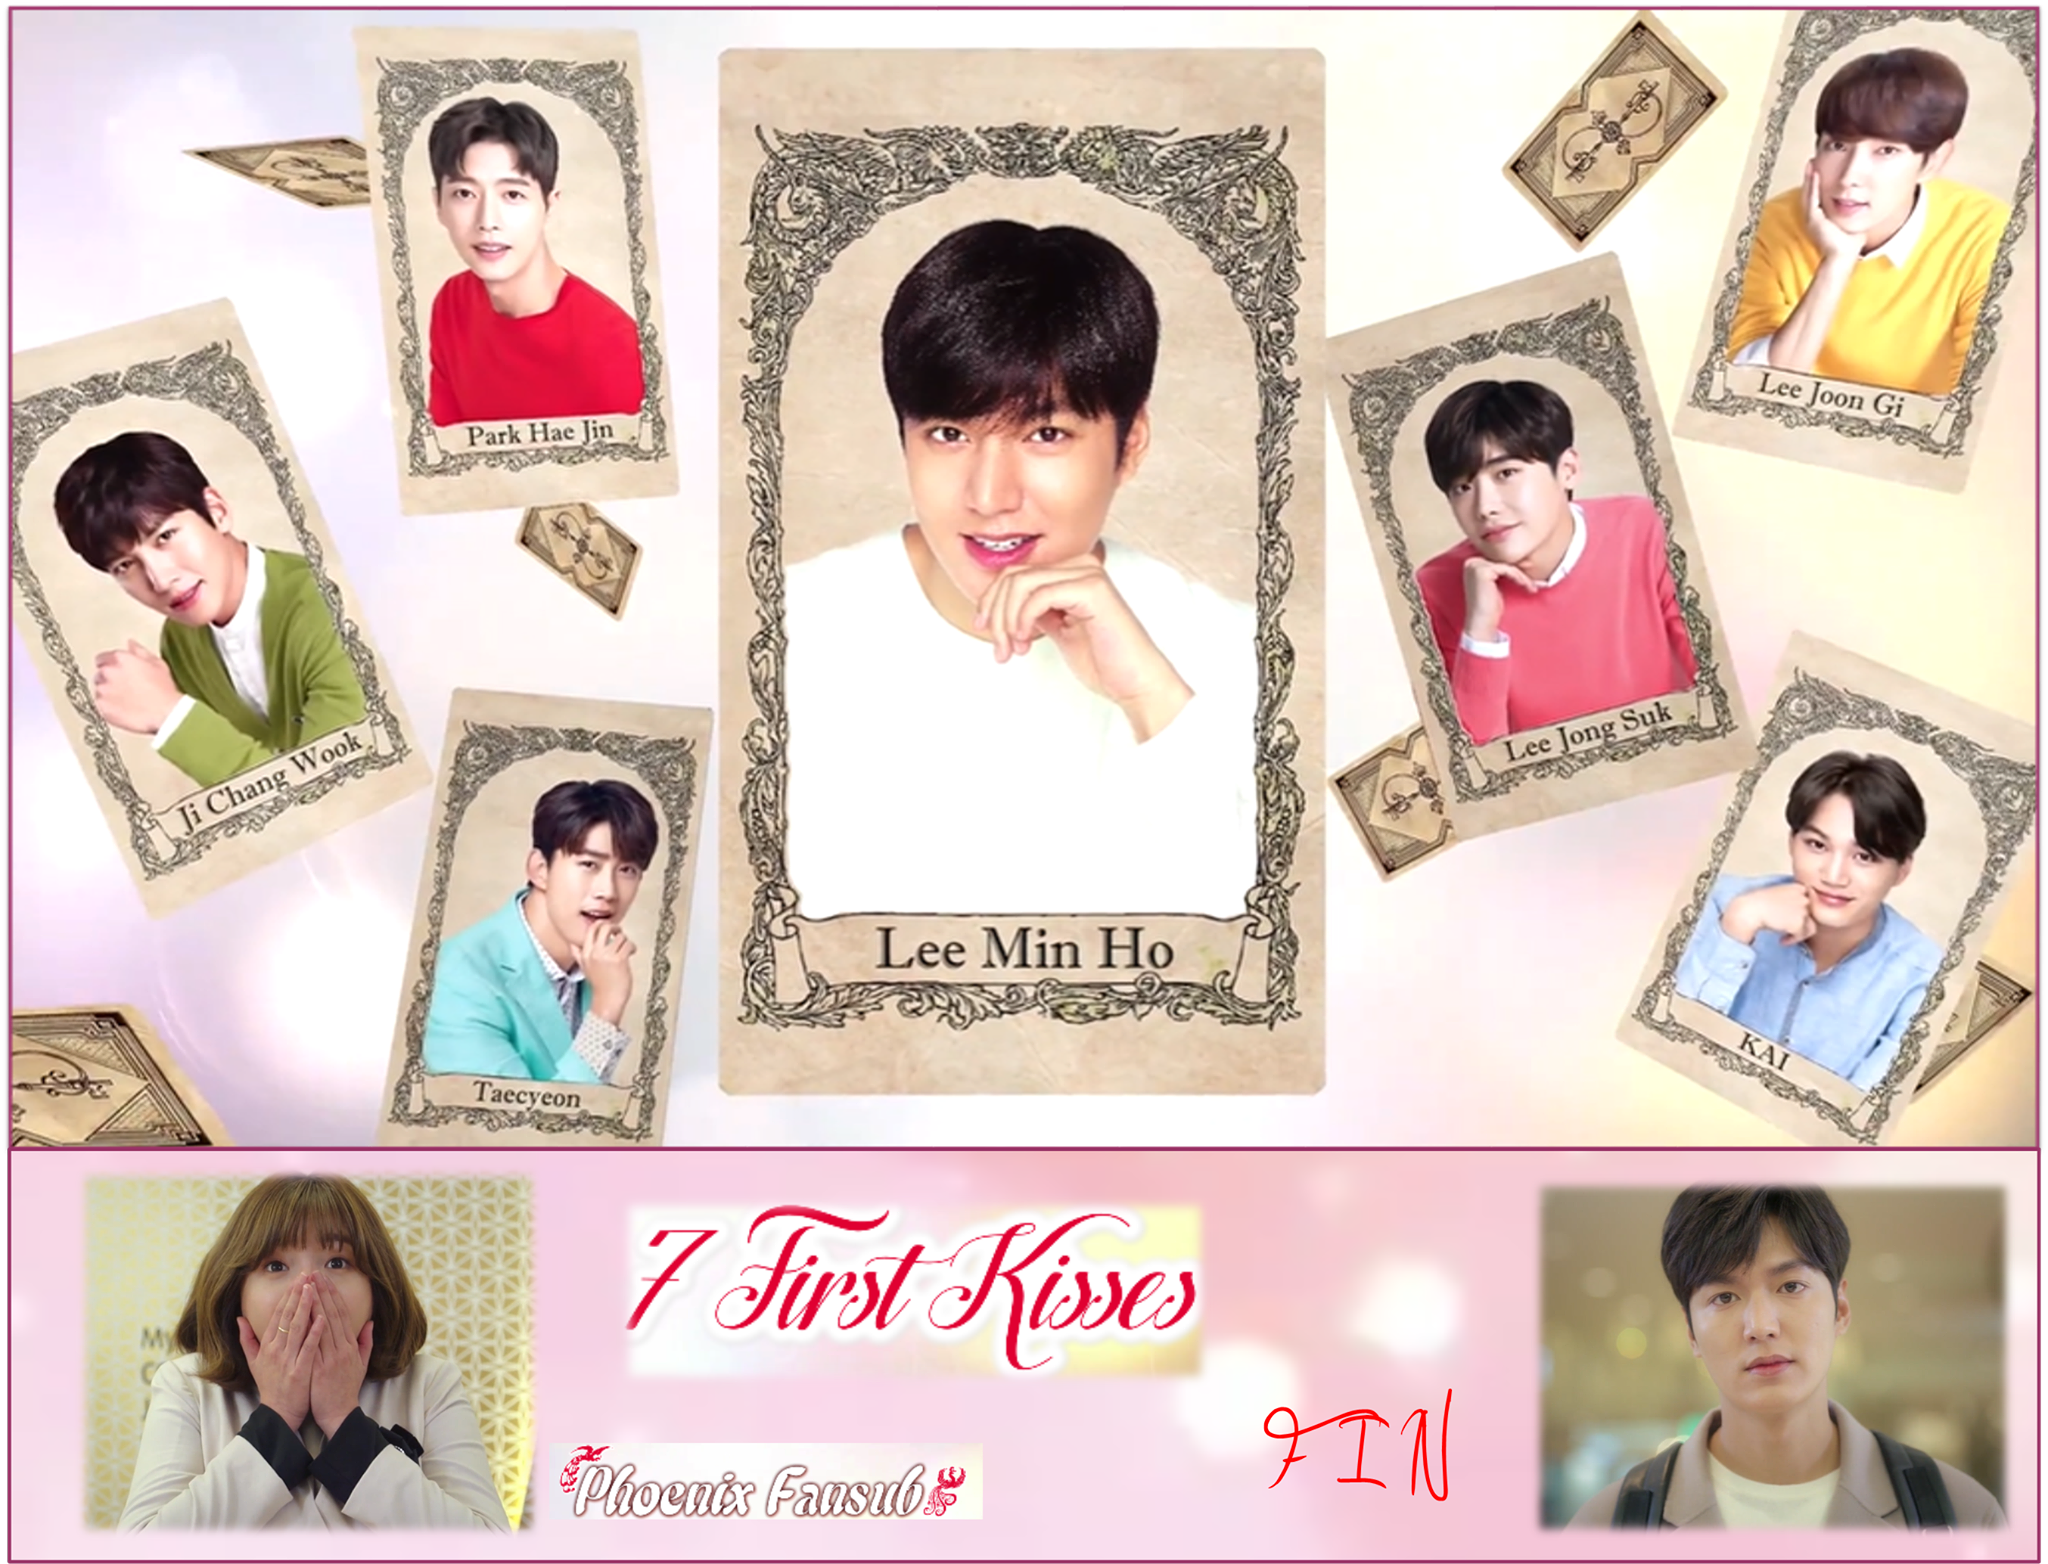 Seven First Kisses / First Kiss For The Seventh Time - Épisode 09 - VOSTFR - FIN - BONUS - Lee Min Ho - 8